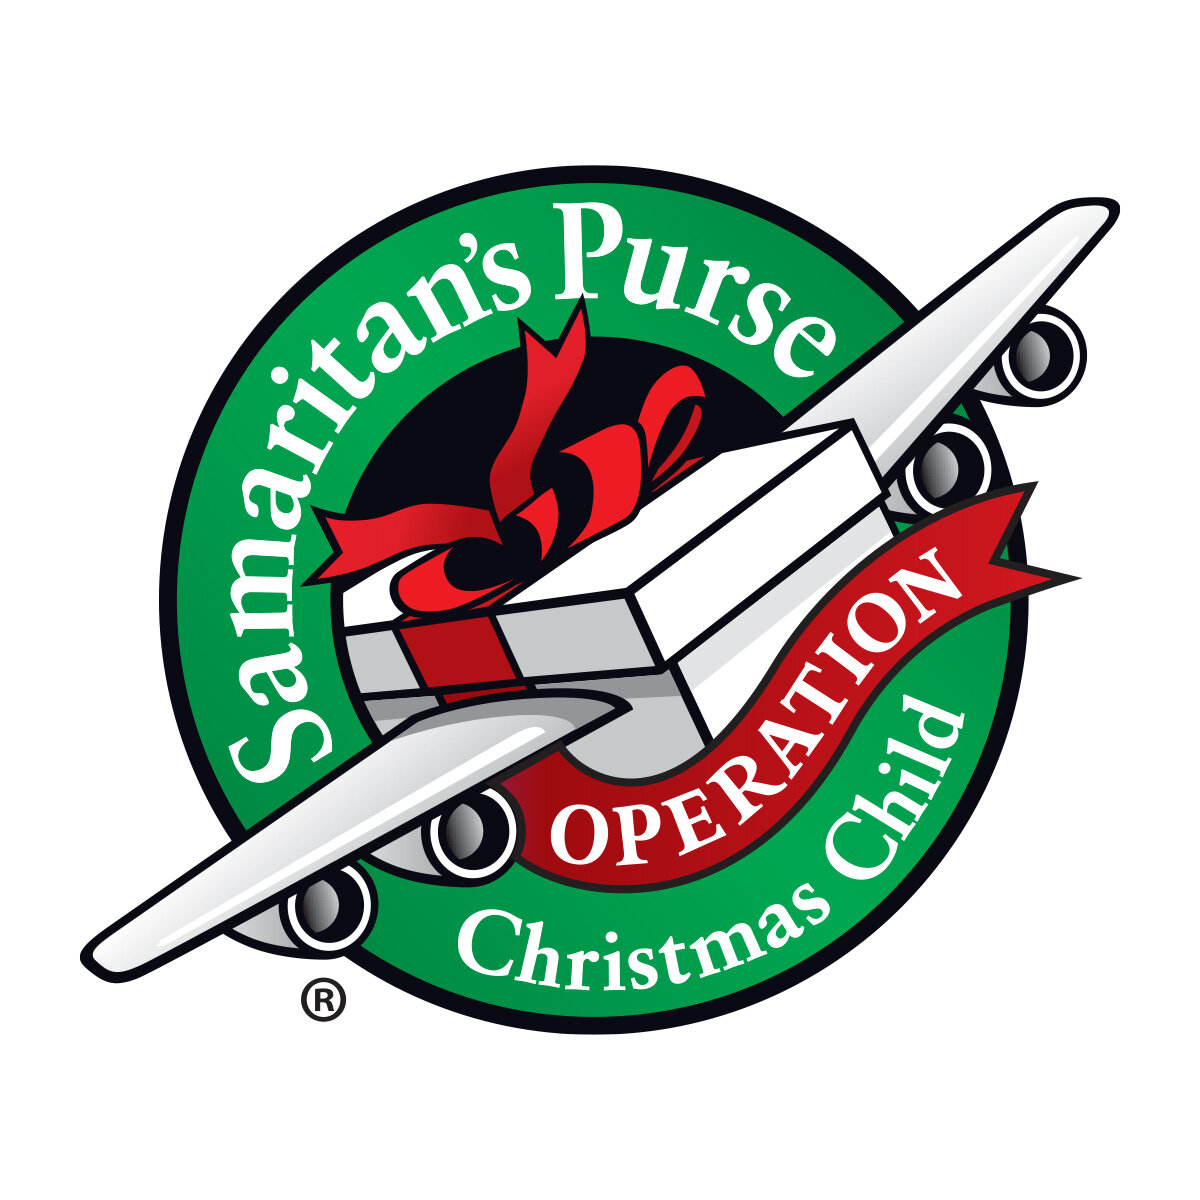 Operation Christmas Child - Demonstrate God's love and share the Good News of Jesus Christ by packing a shoe box gift for needy children around the world!